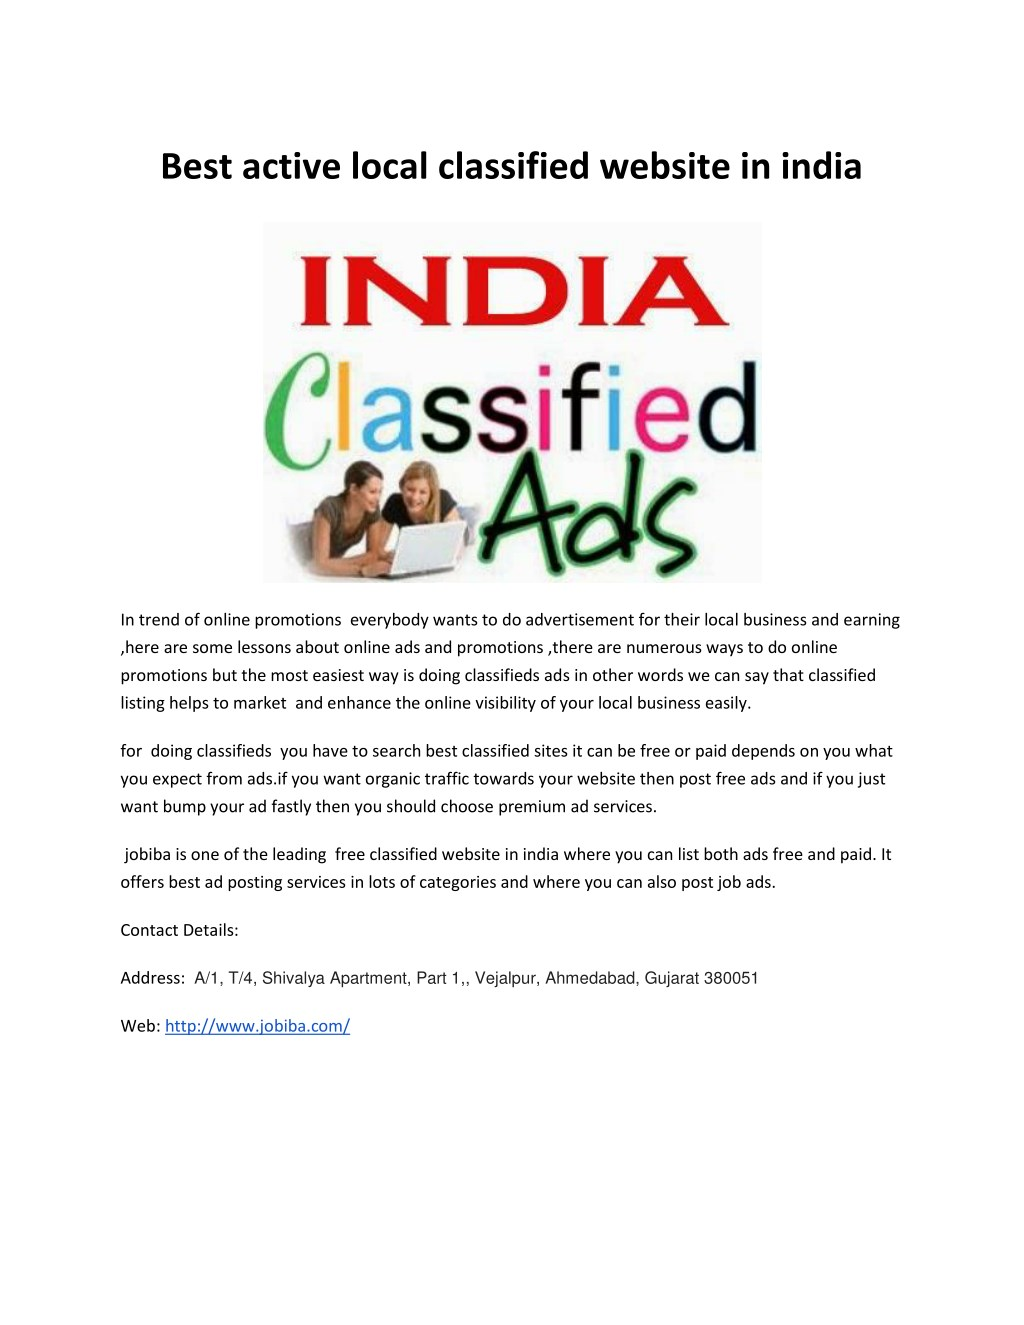 PPT - Job Posting sites in India, free ad posting site in